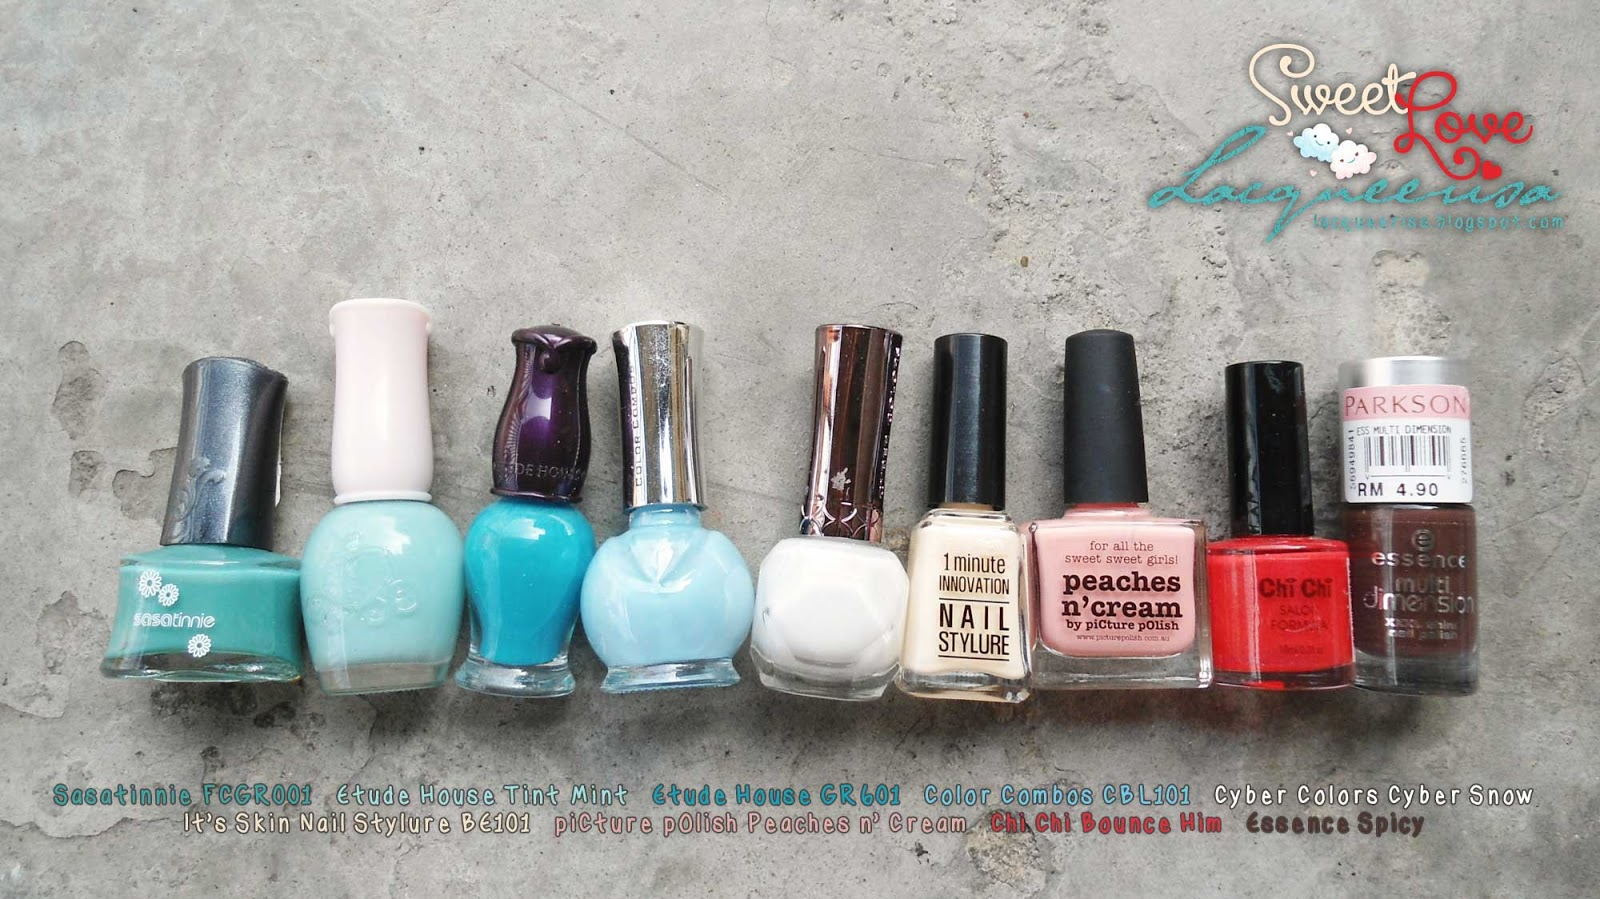 Lacqueerisa: Sweet Love Nail Polishes